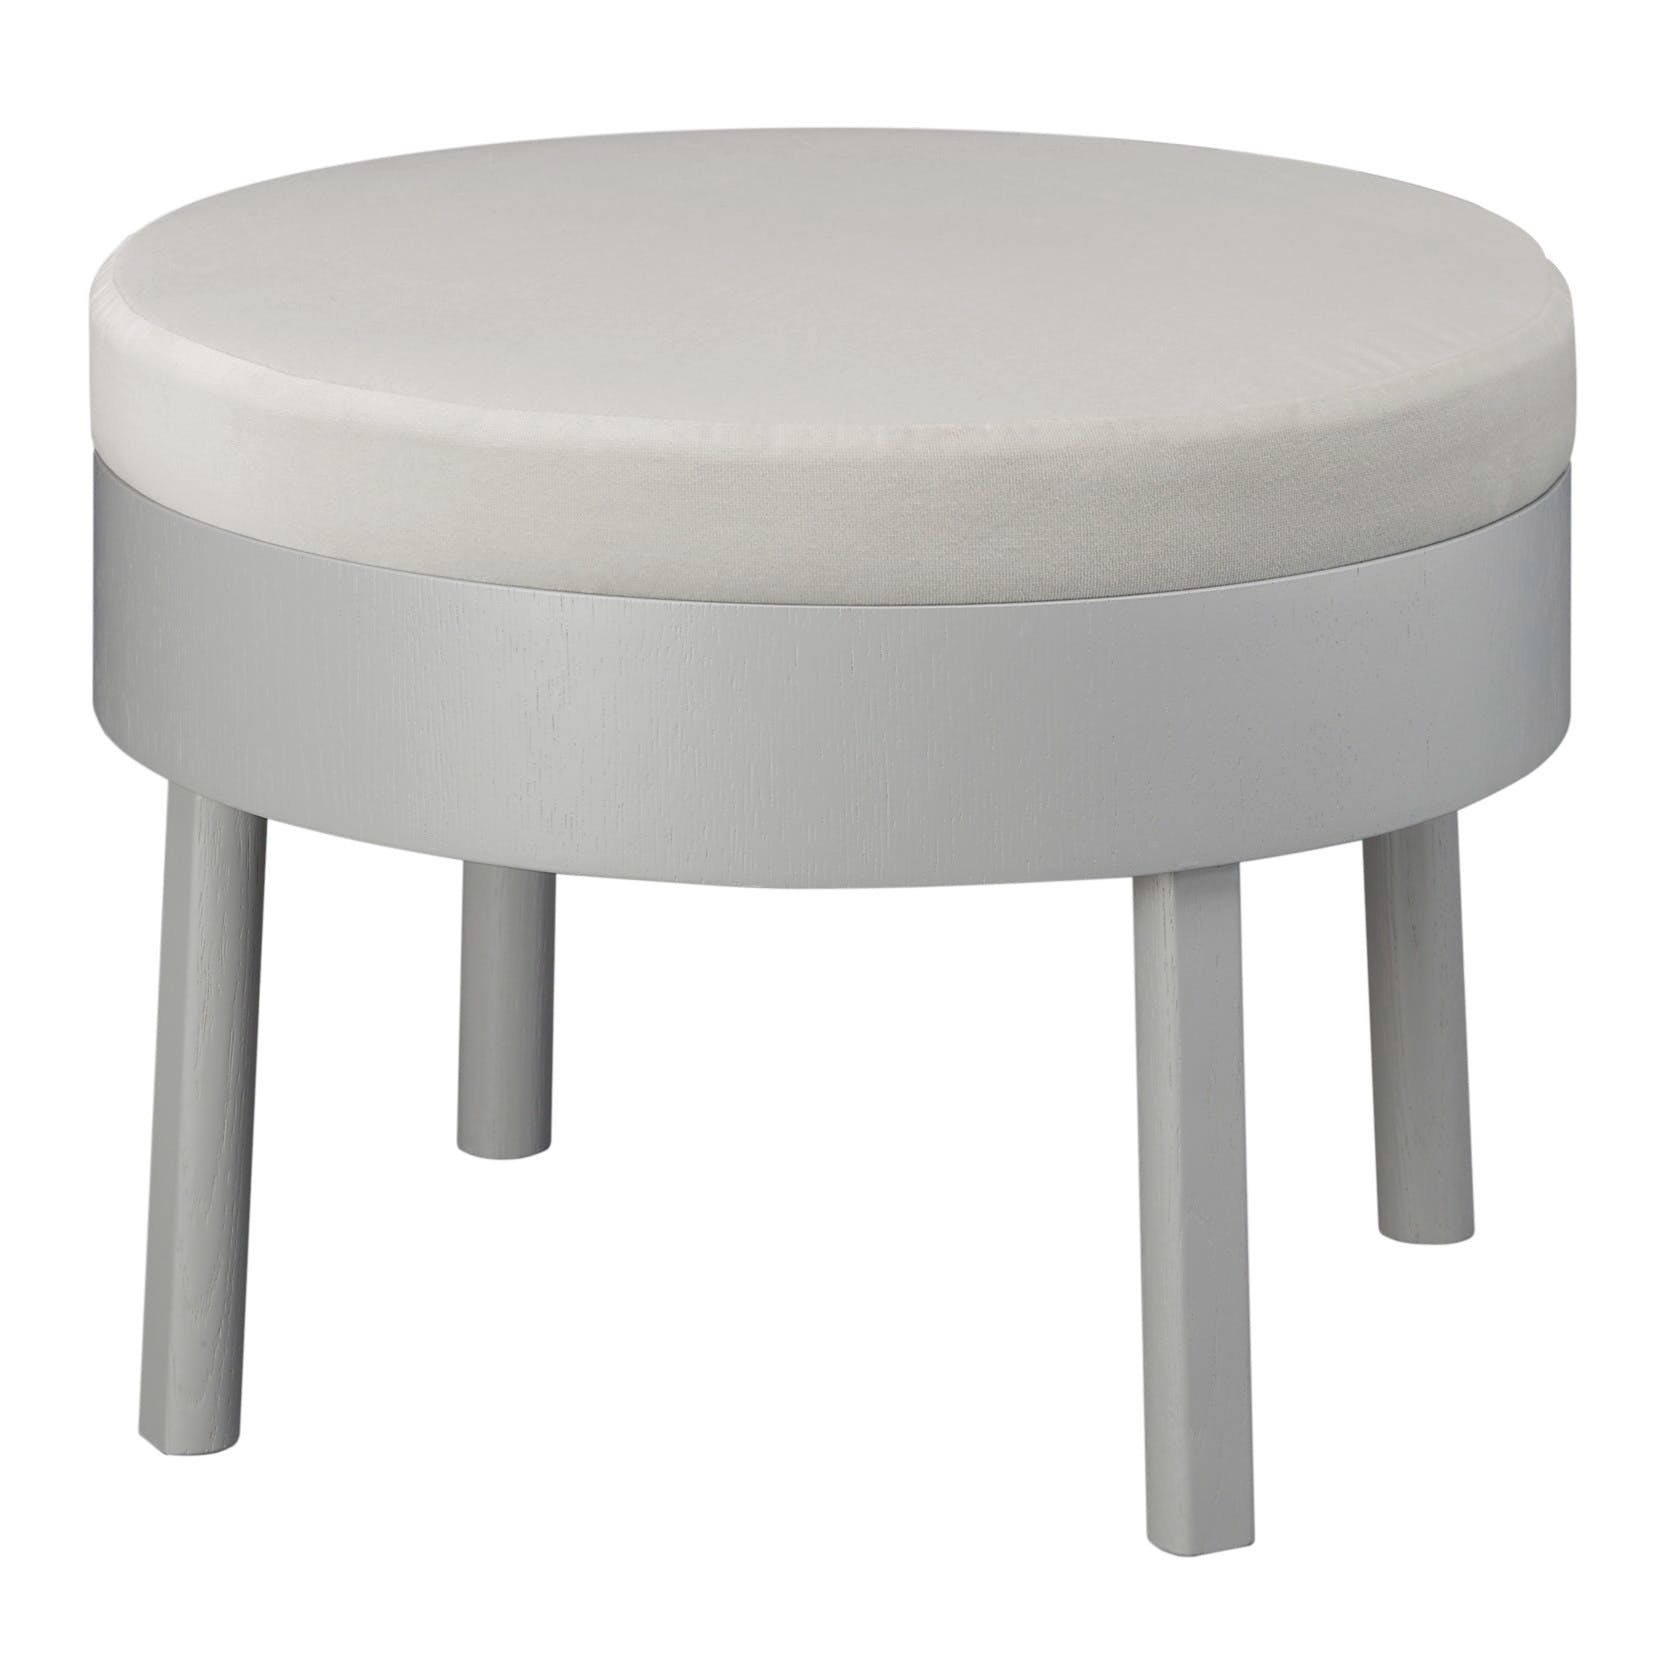 E15-furniture-bessy-stool-haute-living